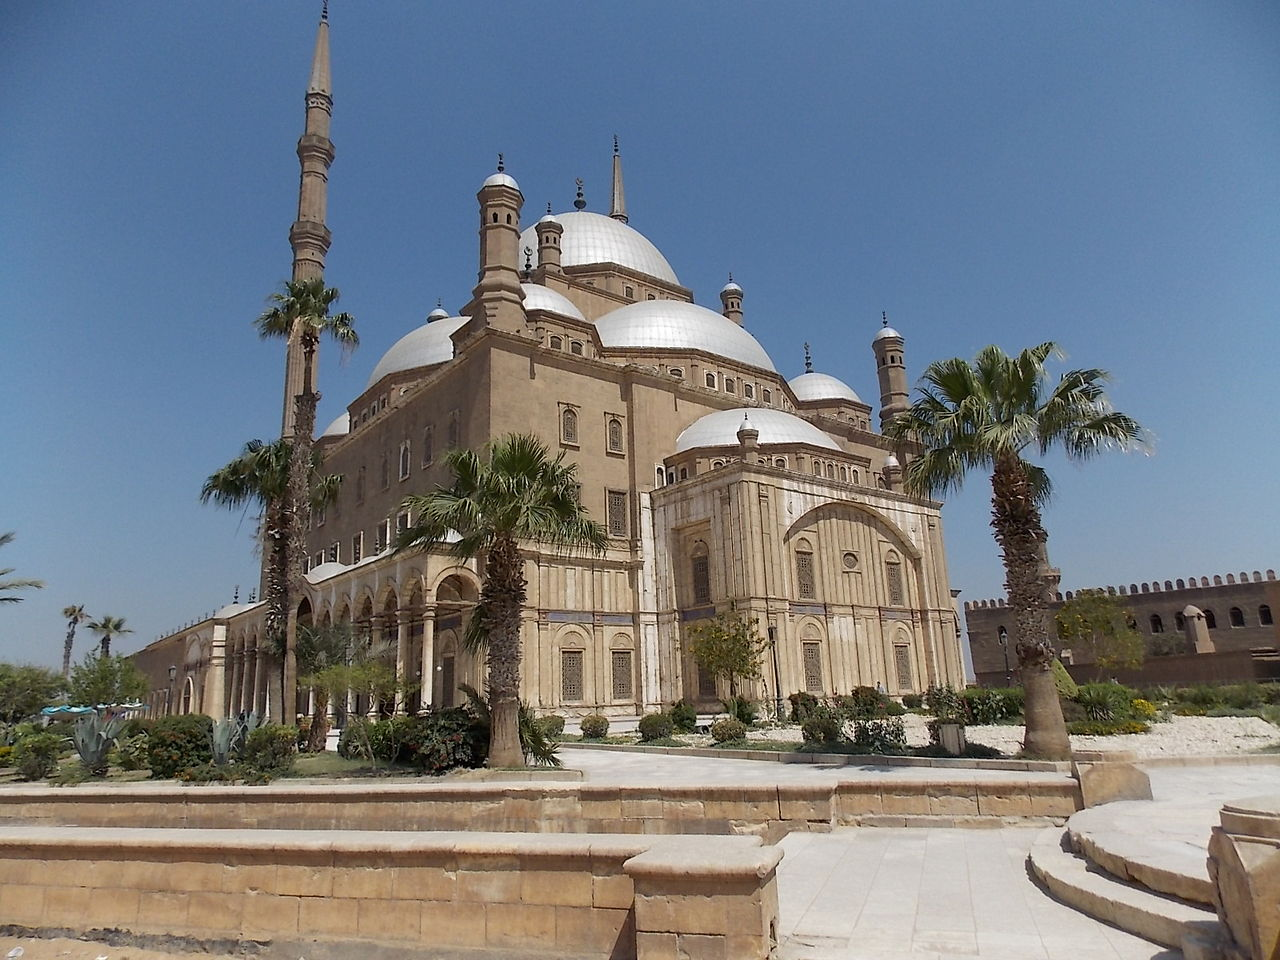 Cairo Citadel and Mosque of Muhammad Ali